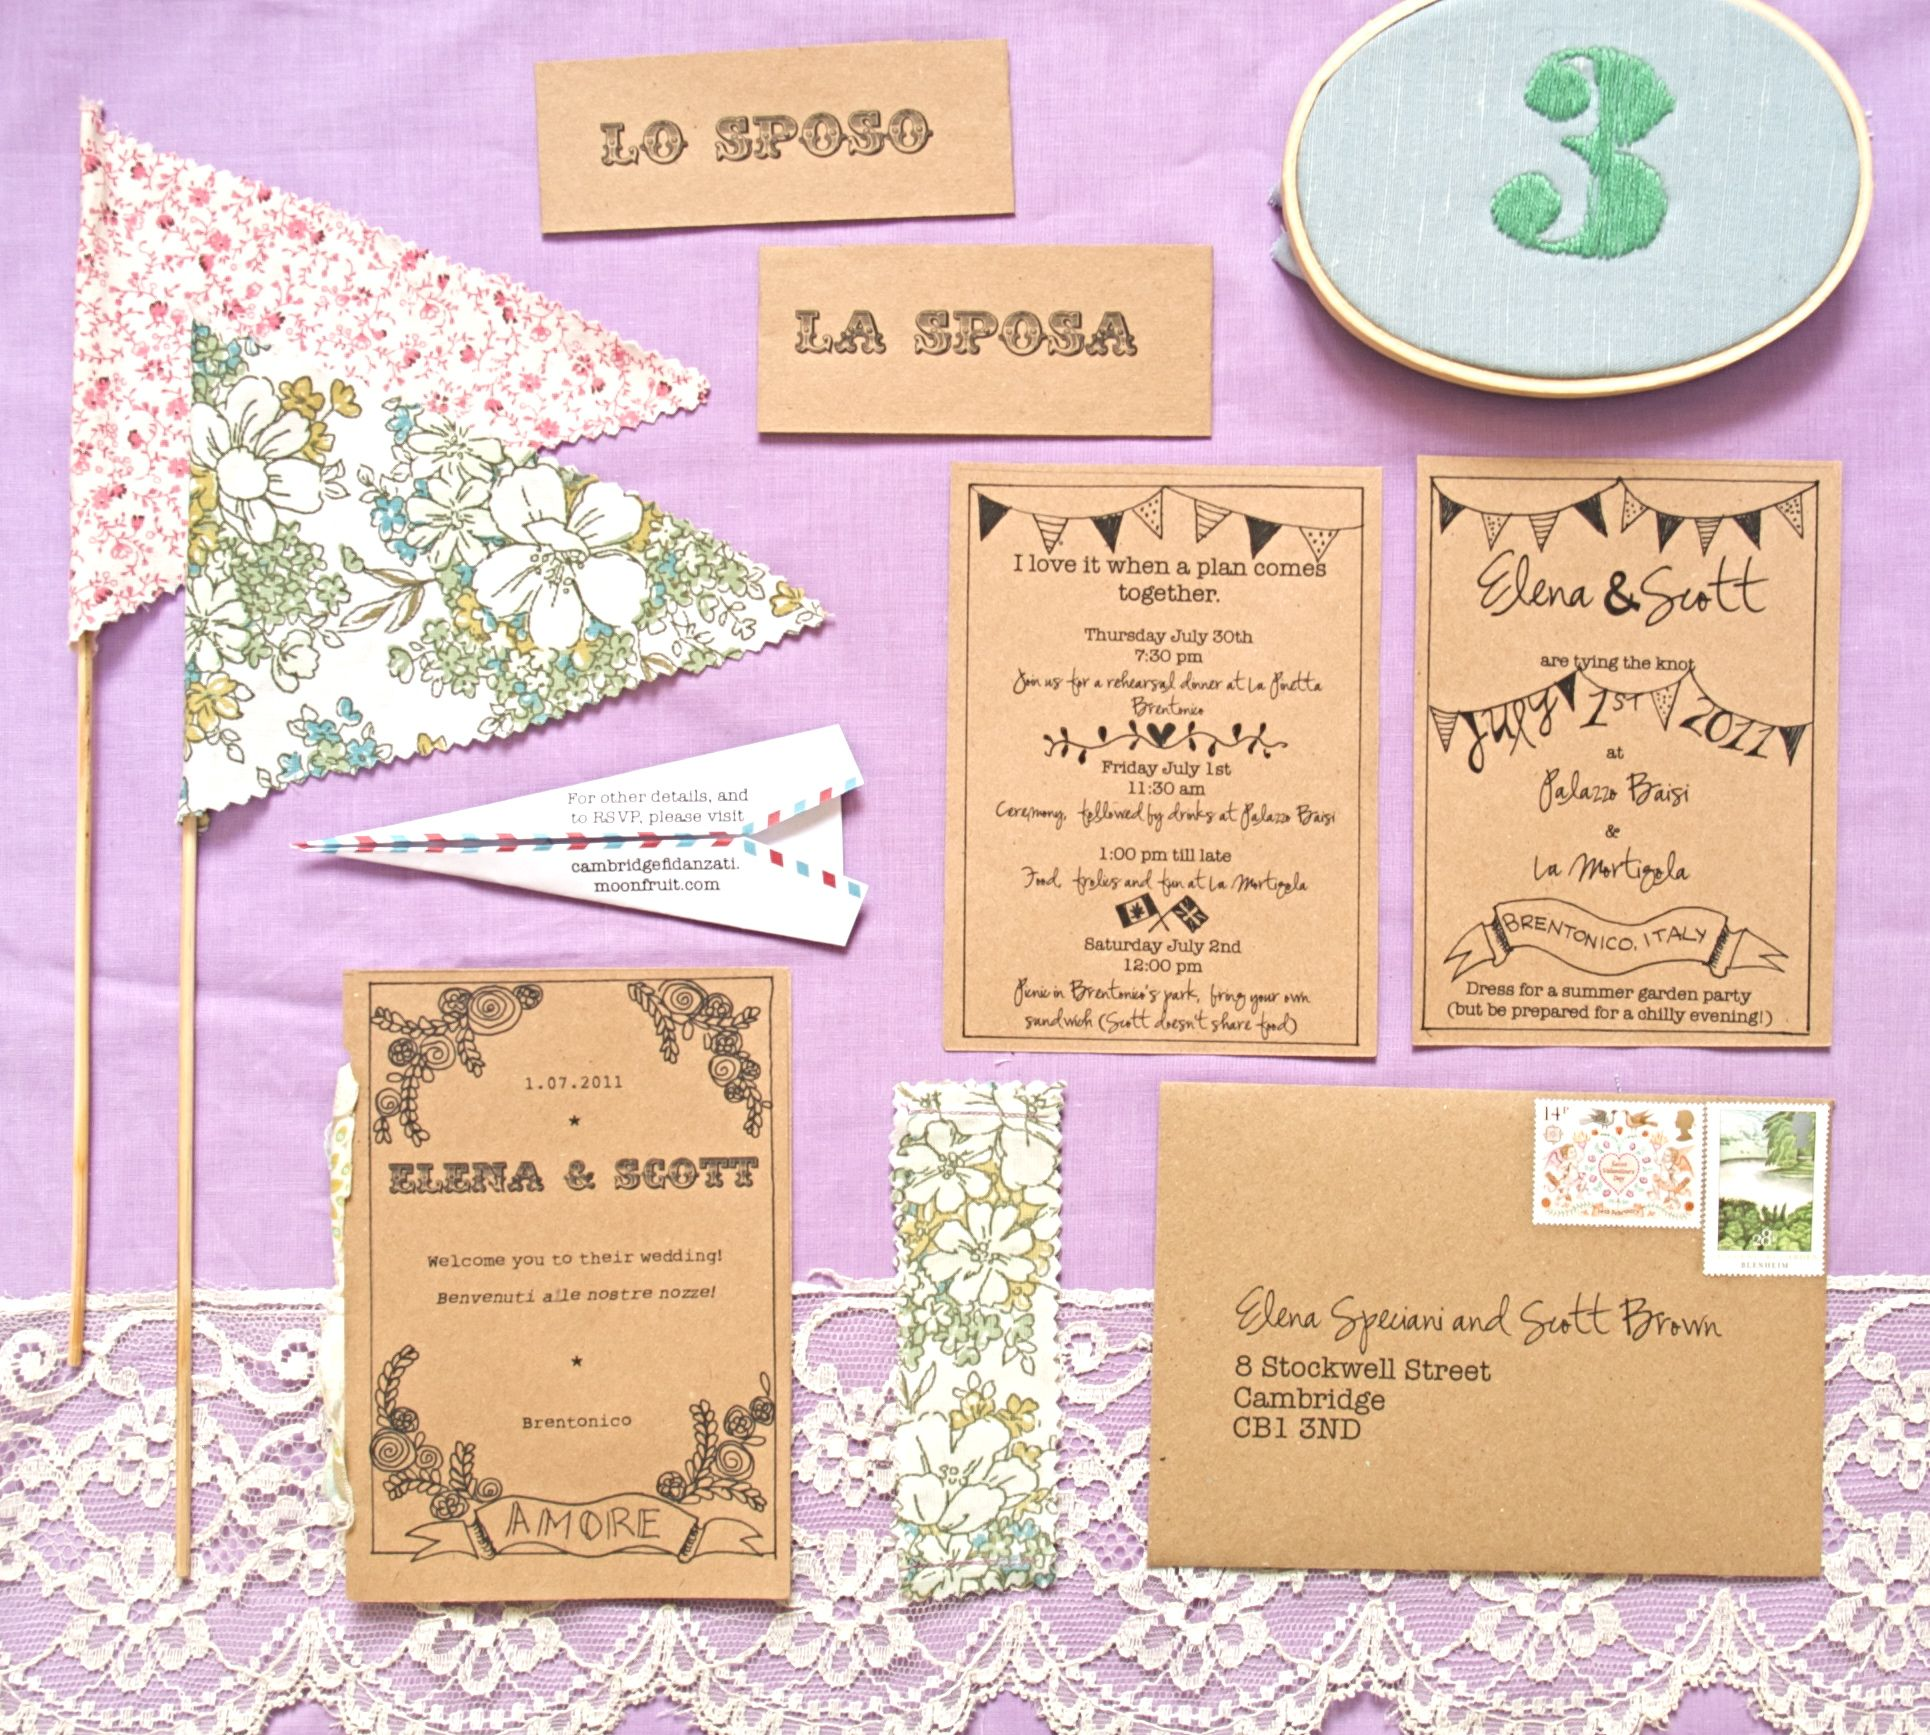 Backgrounds diy kraft paper wedding for smartphone hd pics our invitation suite with and vintage fabric